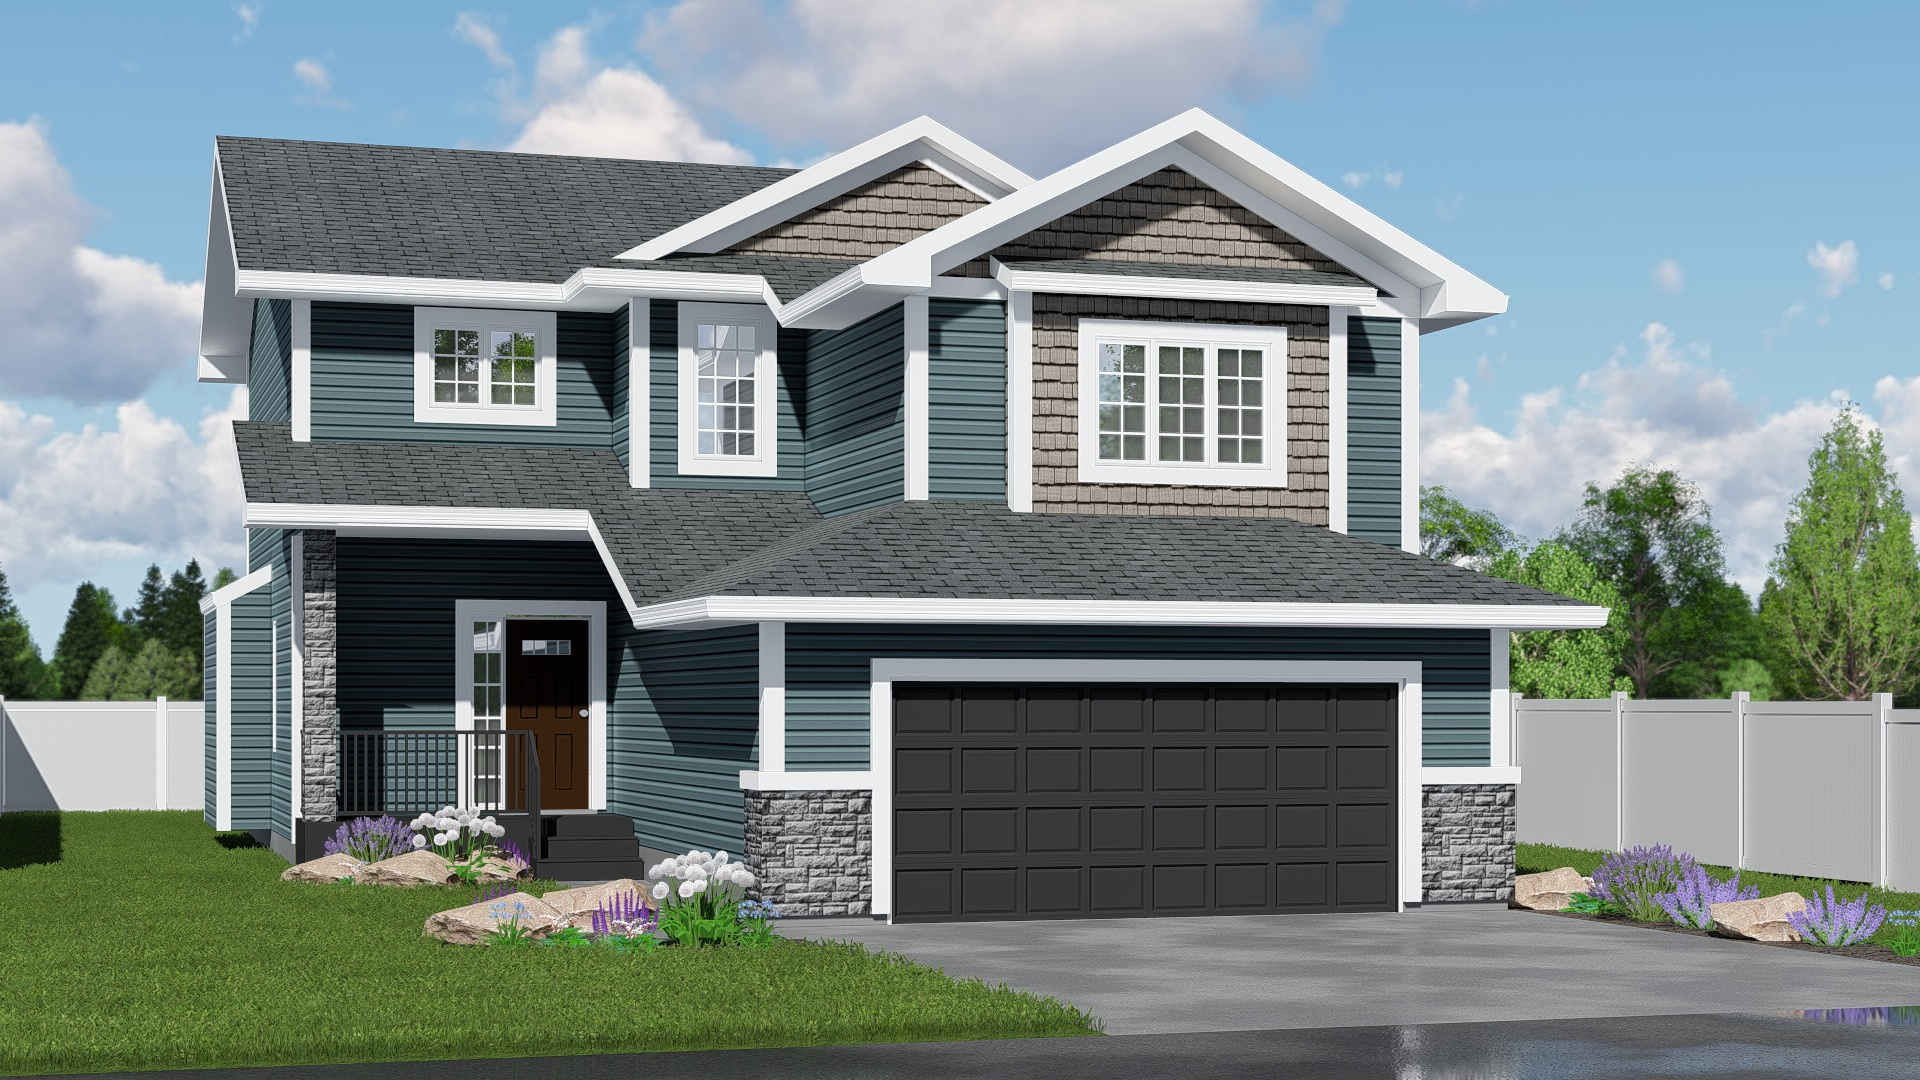 New Home Builder Edmonton Kirkland Homes the Shaughnessy